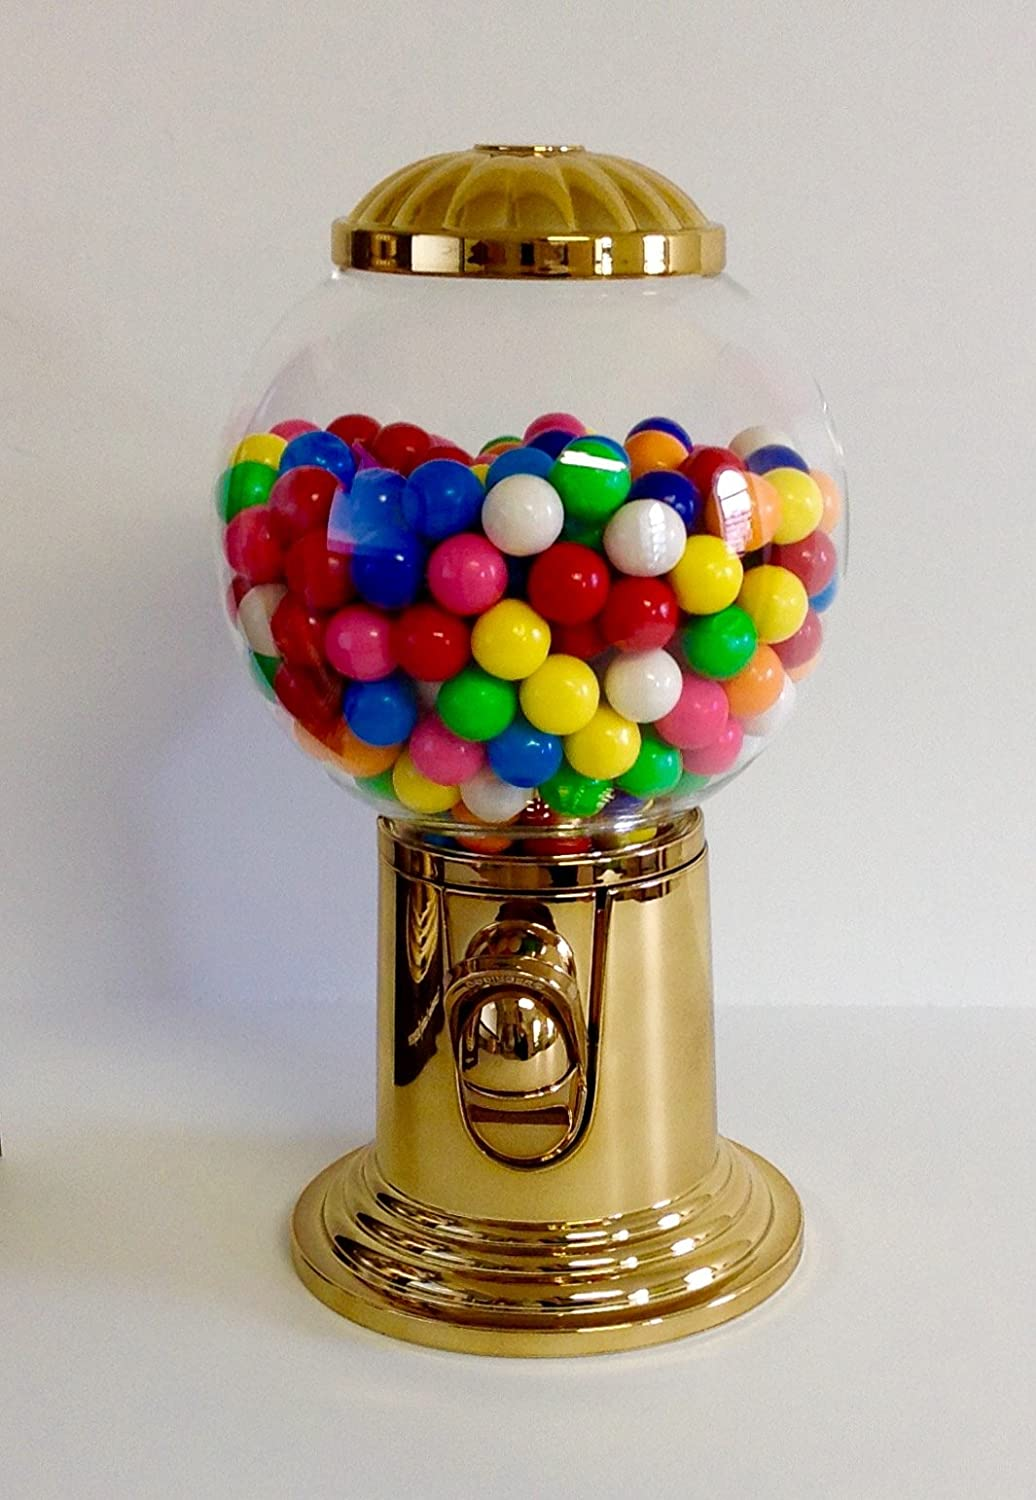 Gumball Machine - The Classy Way to Dole Out Snacks Godinger 1541